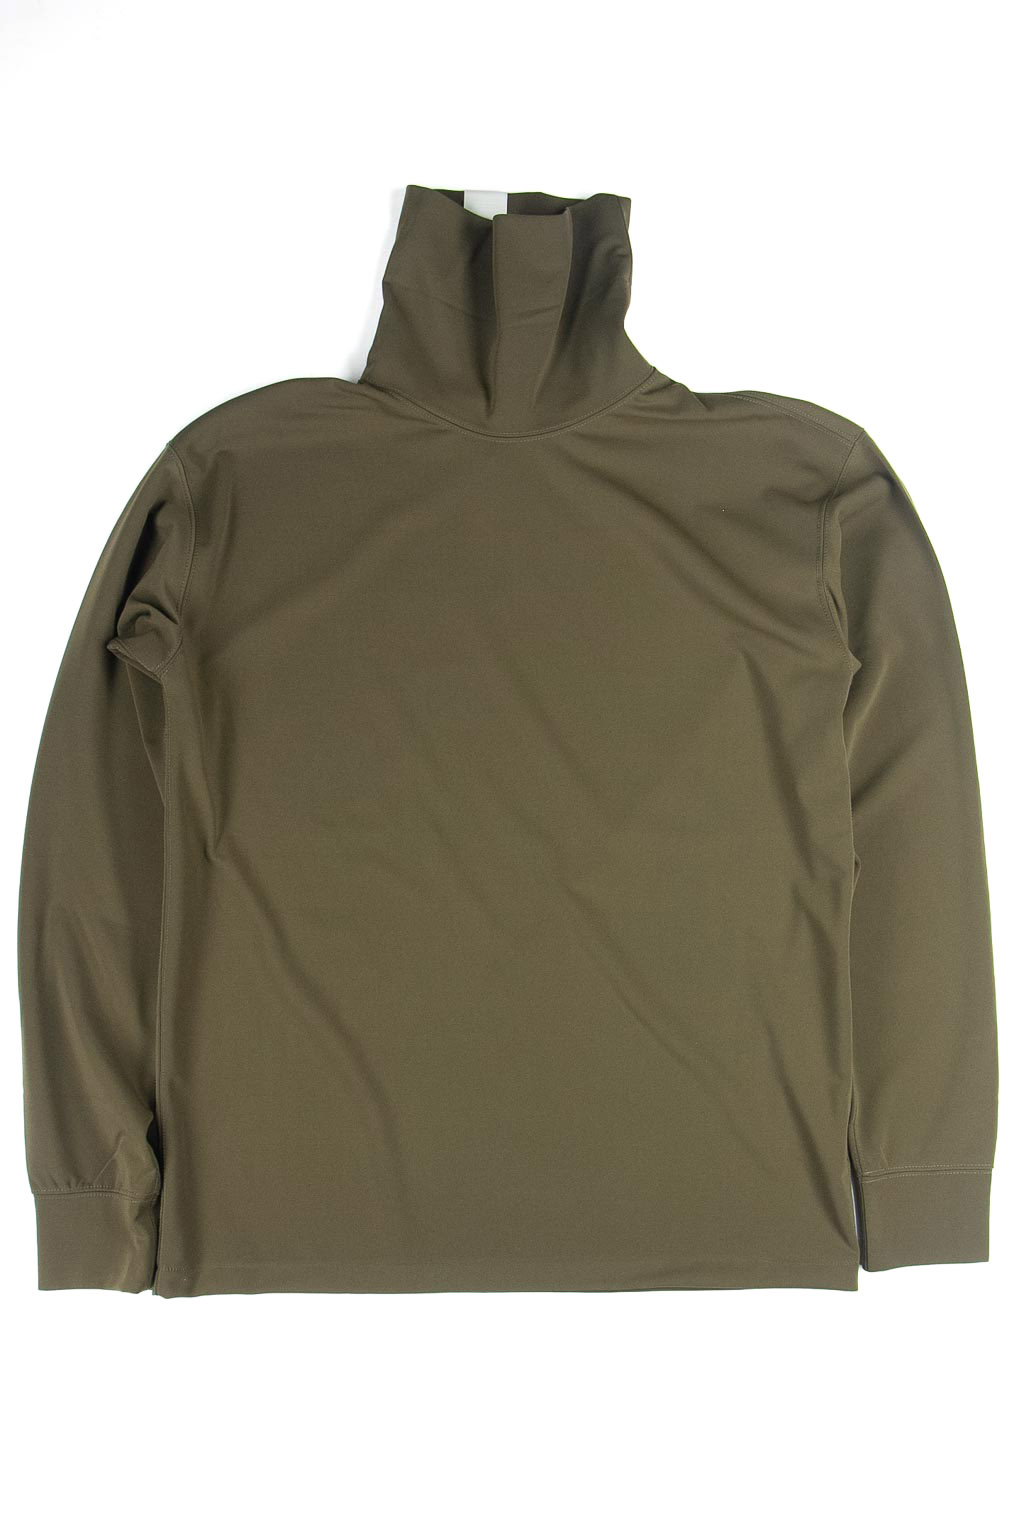 N. Hoolywood 192--CS16-031 Turtleneck - Khaki